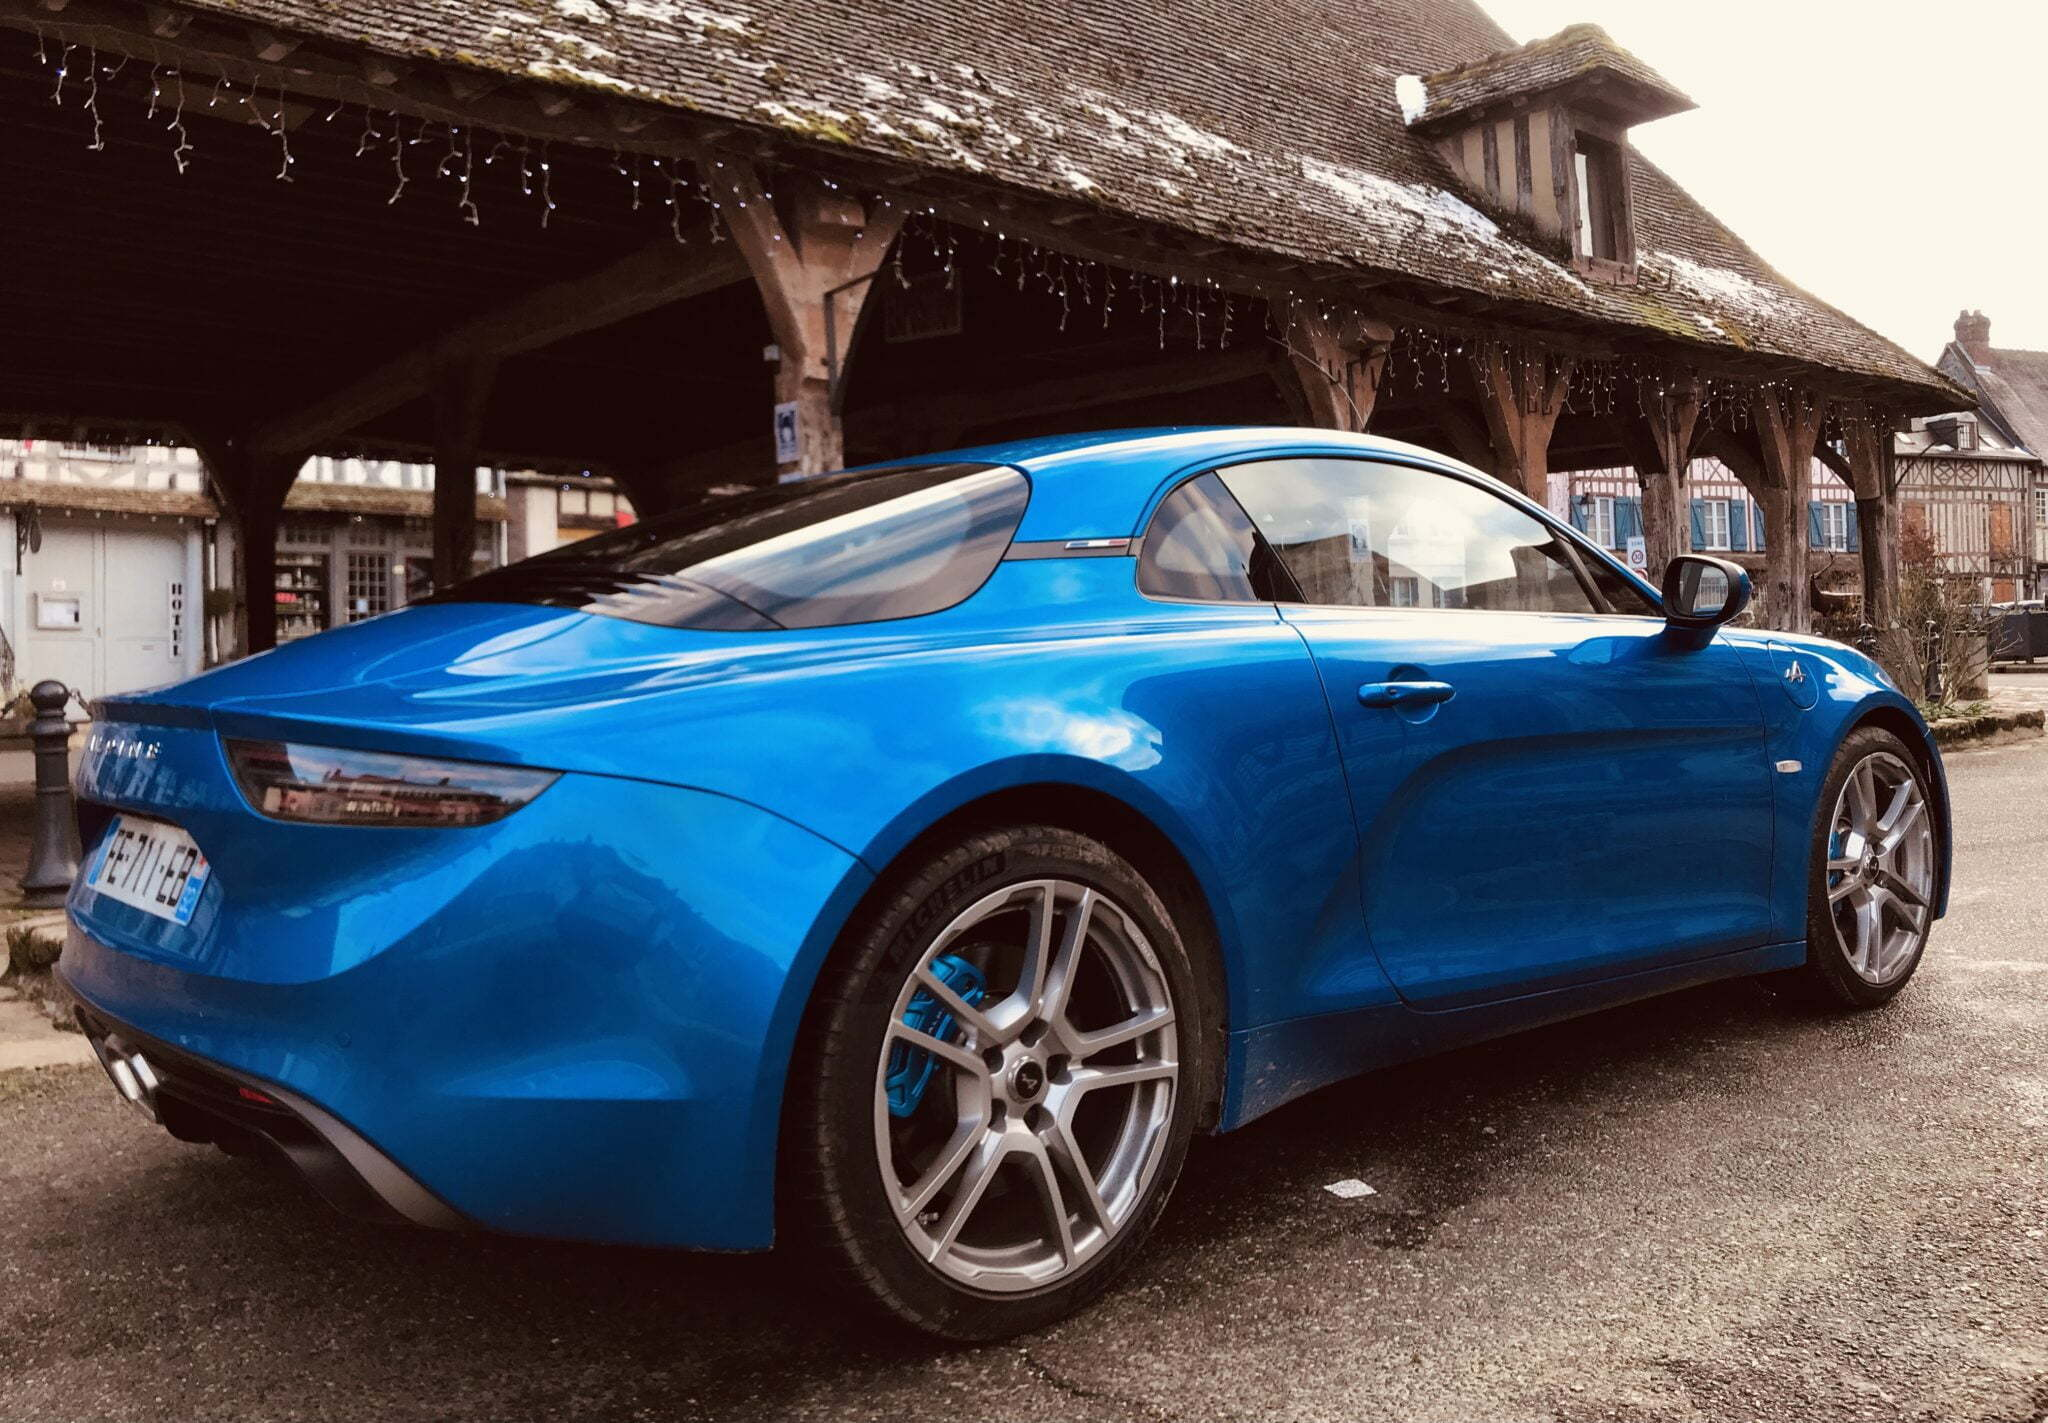 86425A05 05FE 46AF AC23 B0BEE3782D67 | A l'essai : Alpine A110, des sensations Pures.